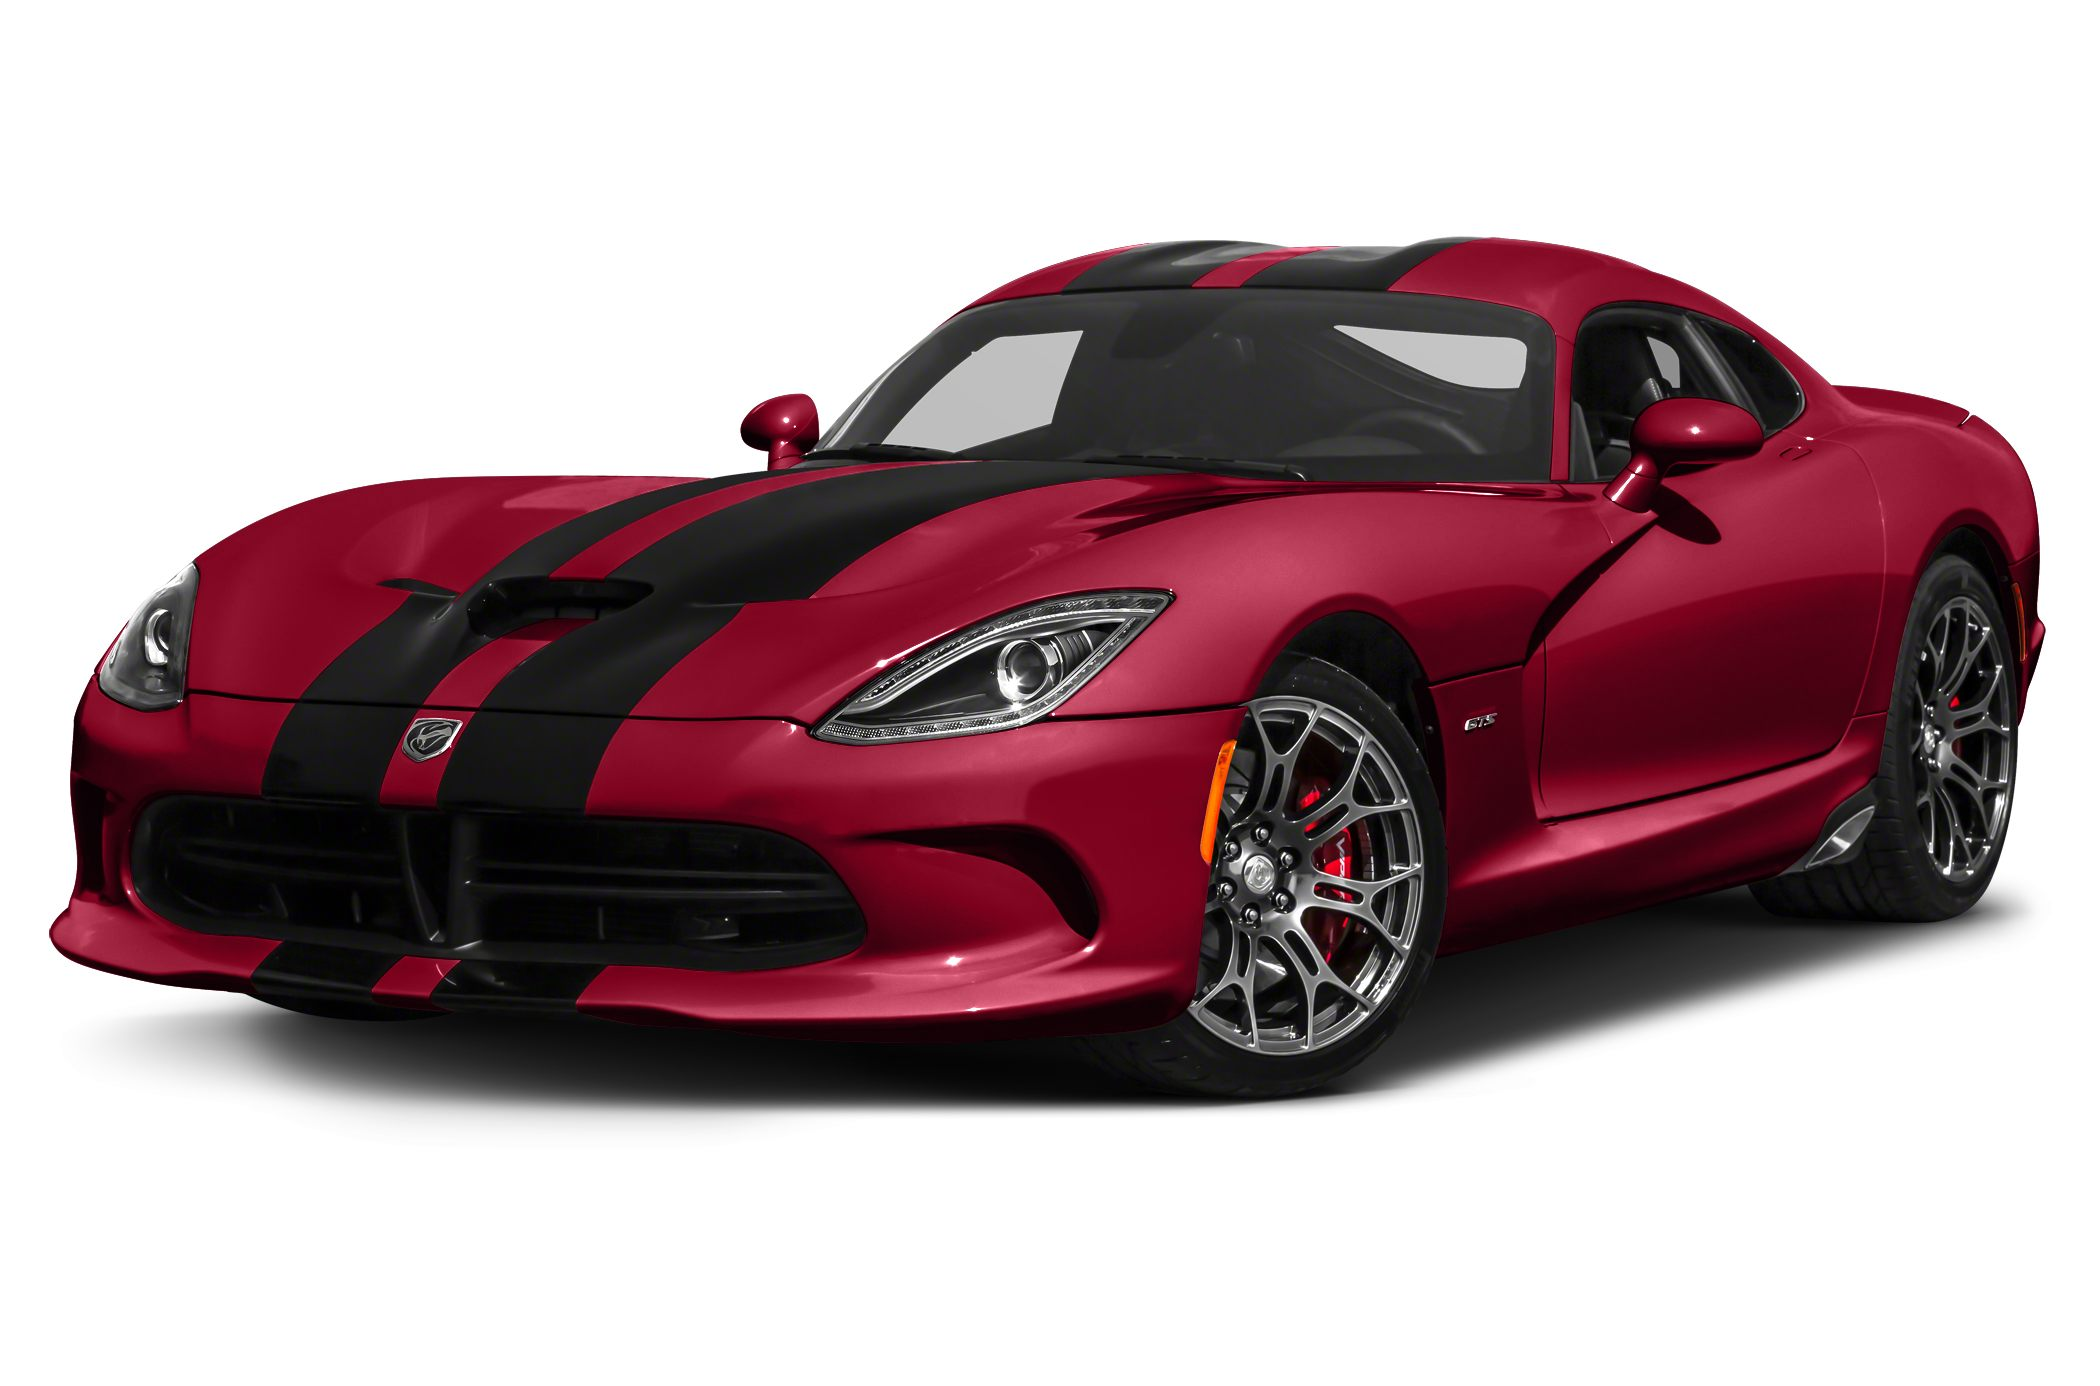 Dodge Viper Canceled 2017 furthermore Fiat 500 Pink together with Alfa Romeo 4c Cars Wallpapers 4k Ultra Hd besides Alfa Romeo 164 Q4 2 additionally 328 Ford Focus St 2015 Blue Wallpaper 7. on 2015 alfa romeo spider interior